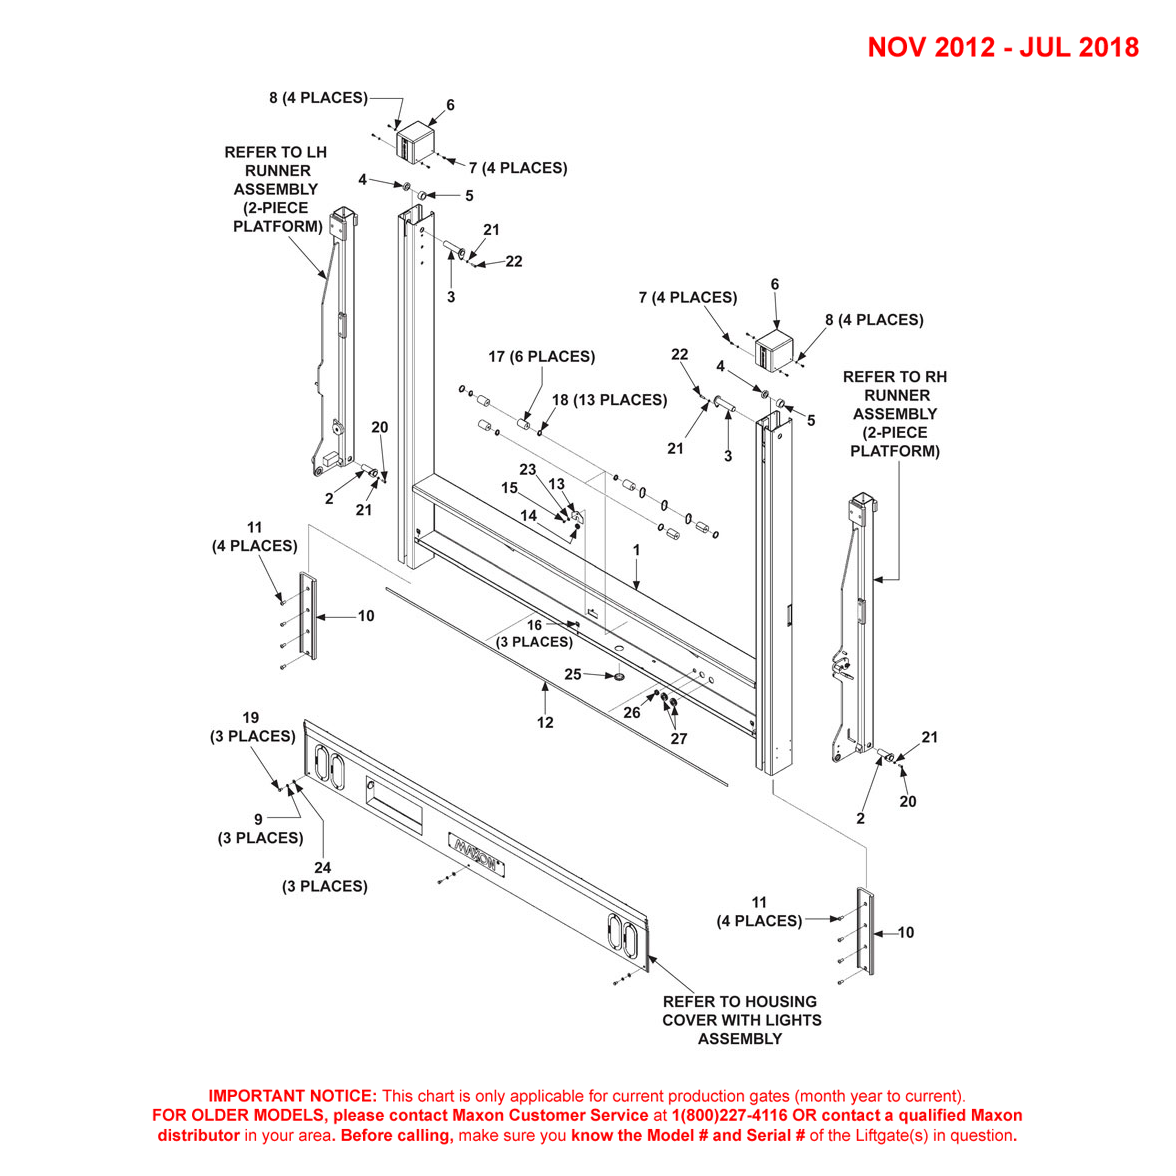 DMD (Nov 2012 - Jul 2018) 2-Piece Platform Main Assembly Diagram